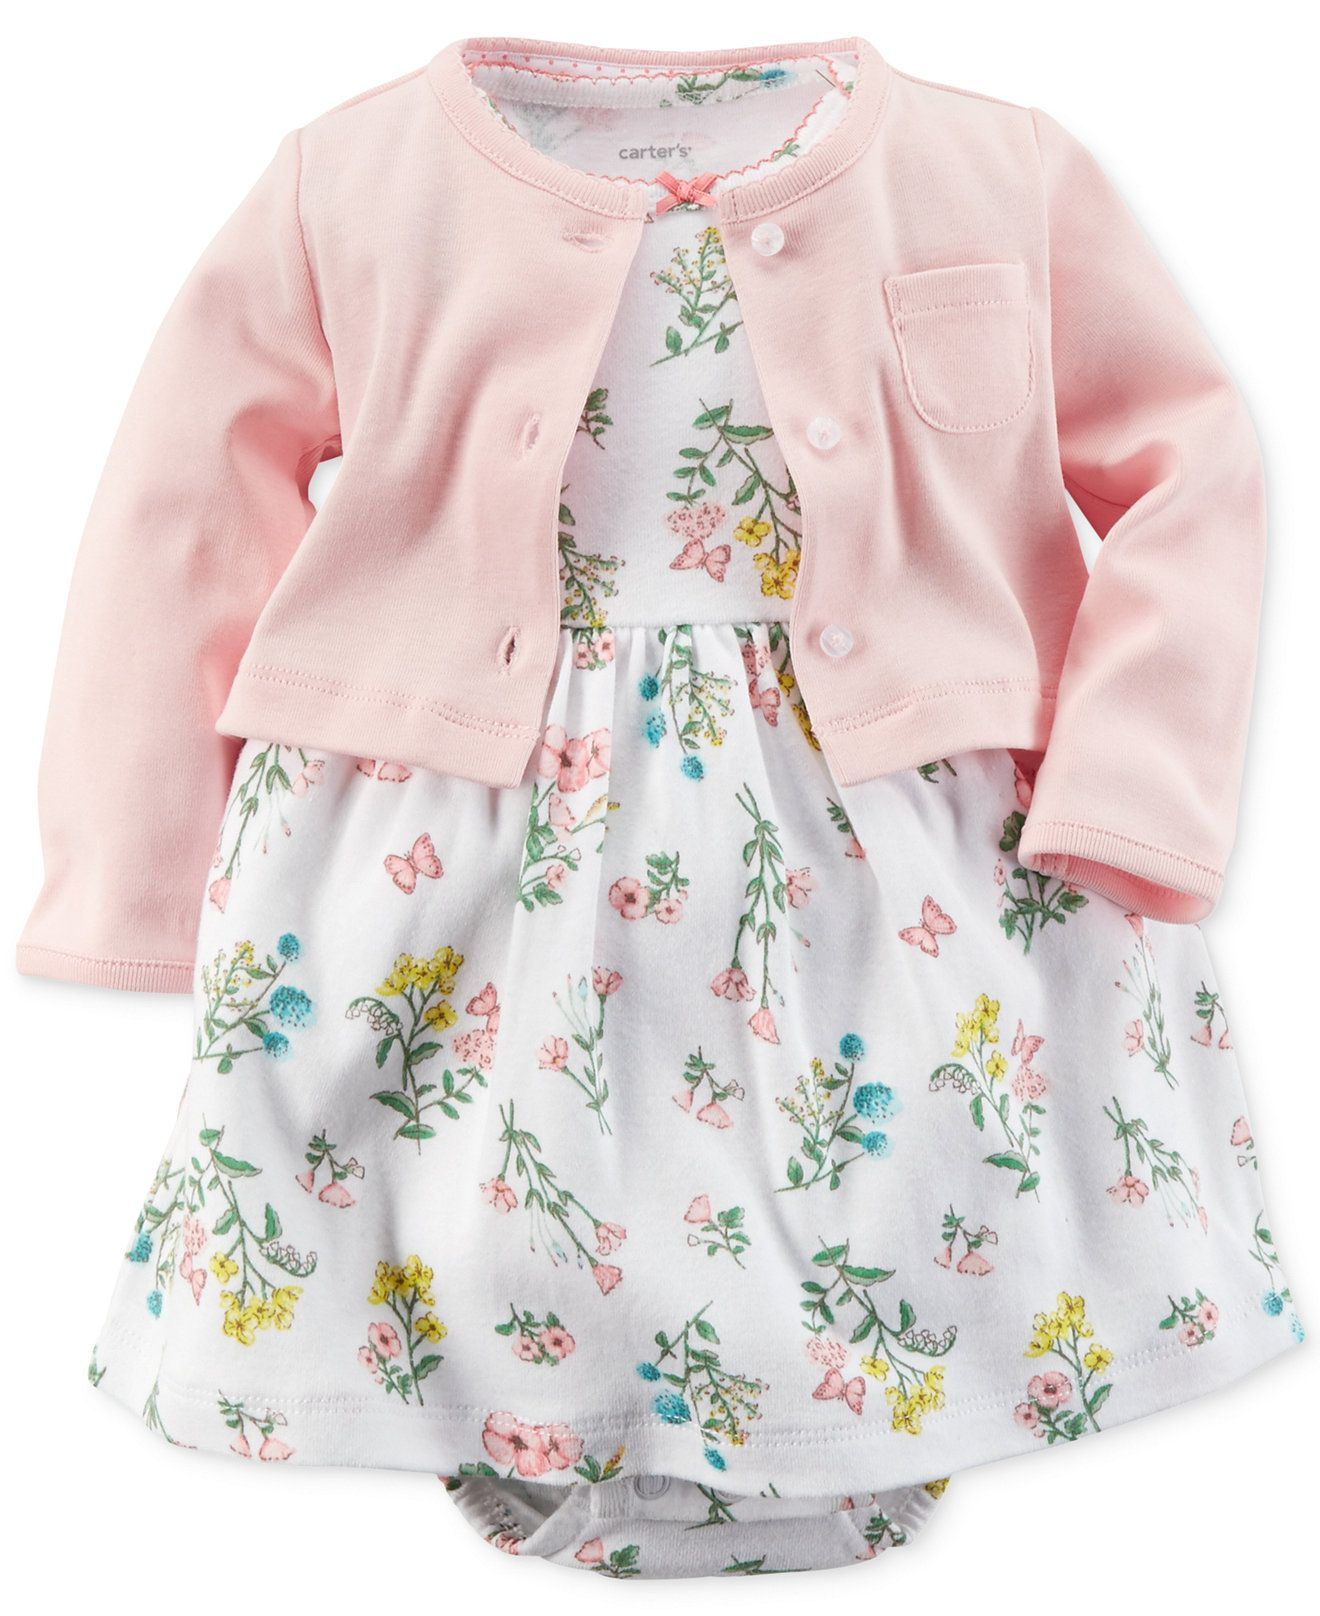 Carter s Baby Girls 2 Piece Cardigan & Floral Dress Set Kids